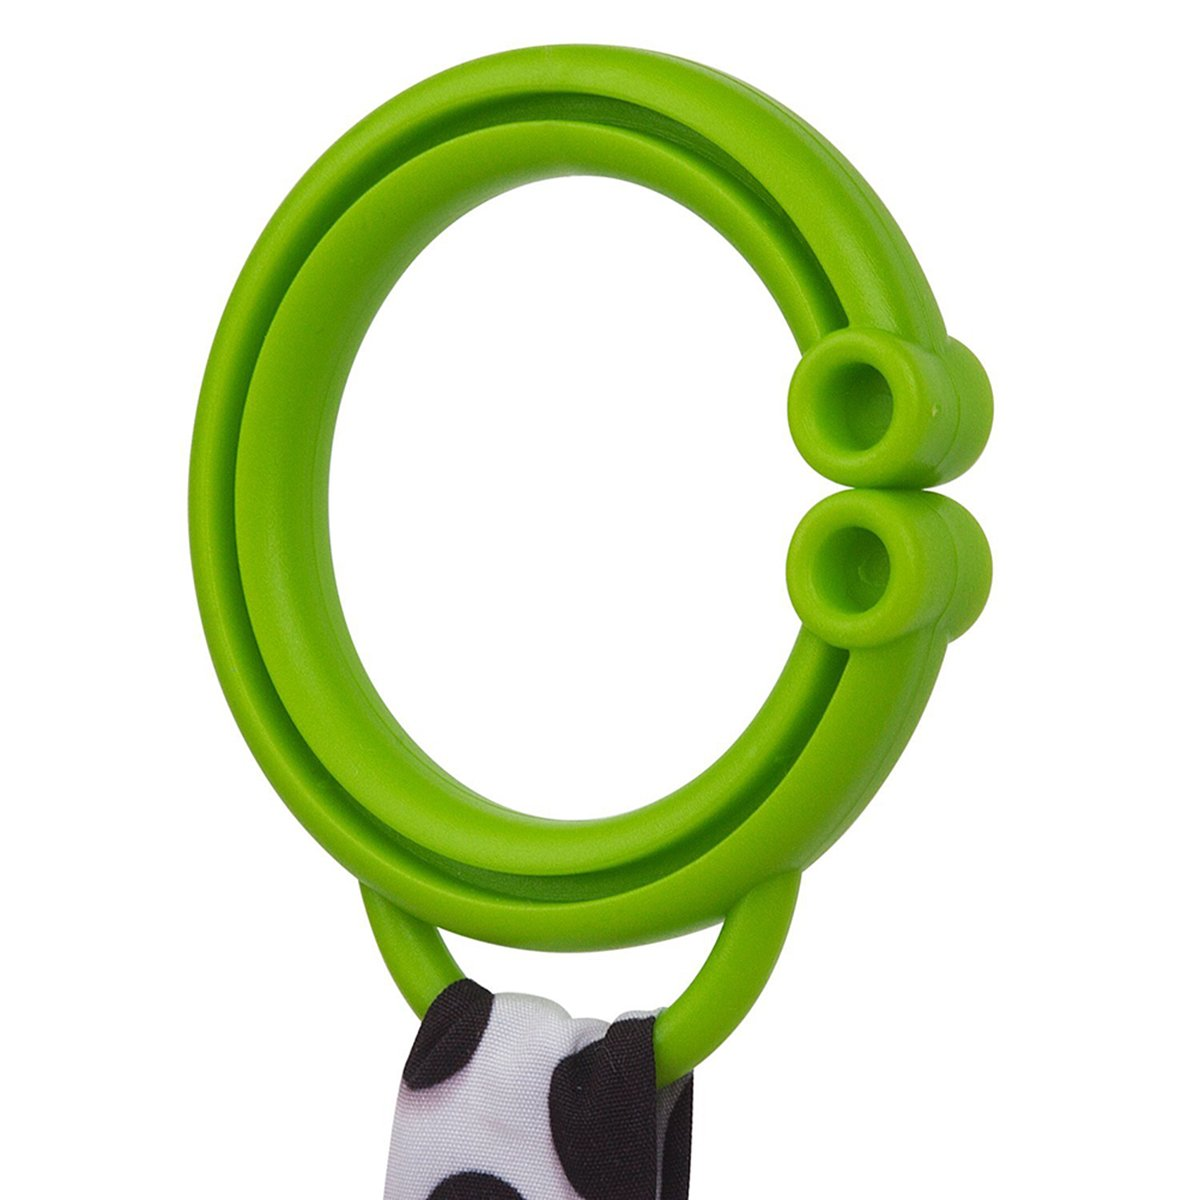 NUOLUX Stroller Car Seat Toy Kids Baby Bed Crib Cot Pram Hanging Musical Toy Pendant (Cow) by NUOLUX (Image #2)